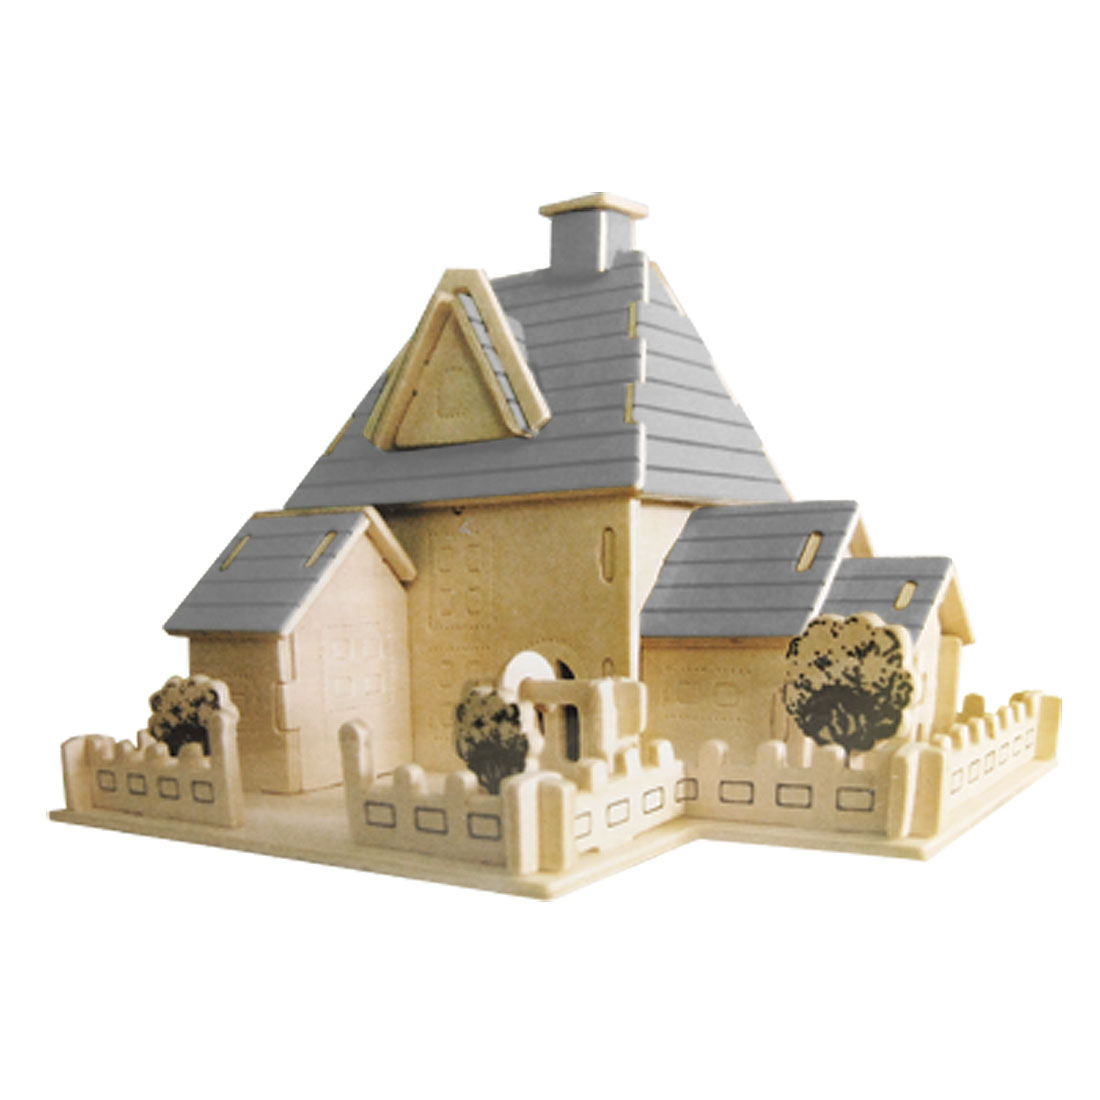 Sweet Dollhouse Wooden Educational Construction Toy 3D Jigsaw Puzzle